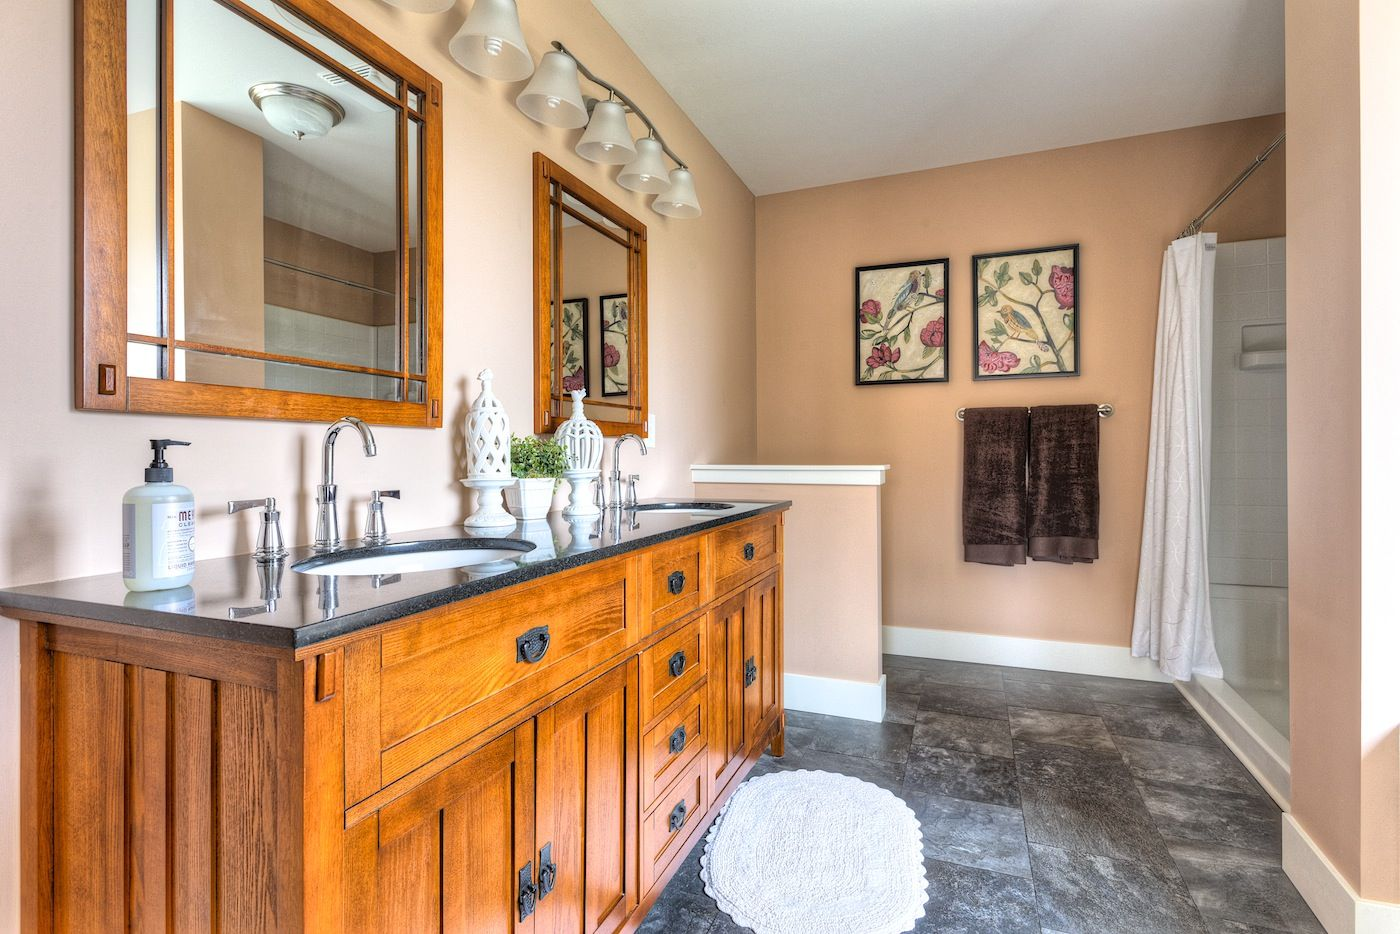 Bathroom featured in the Traditions 2200 V8.0b By Allen Edwin Homes in Benton Harbor, MI